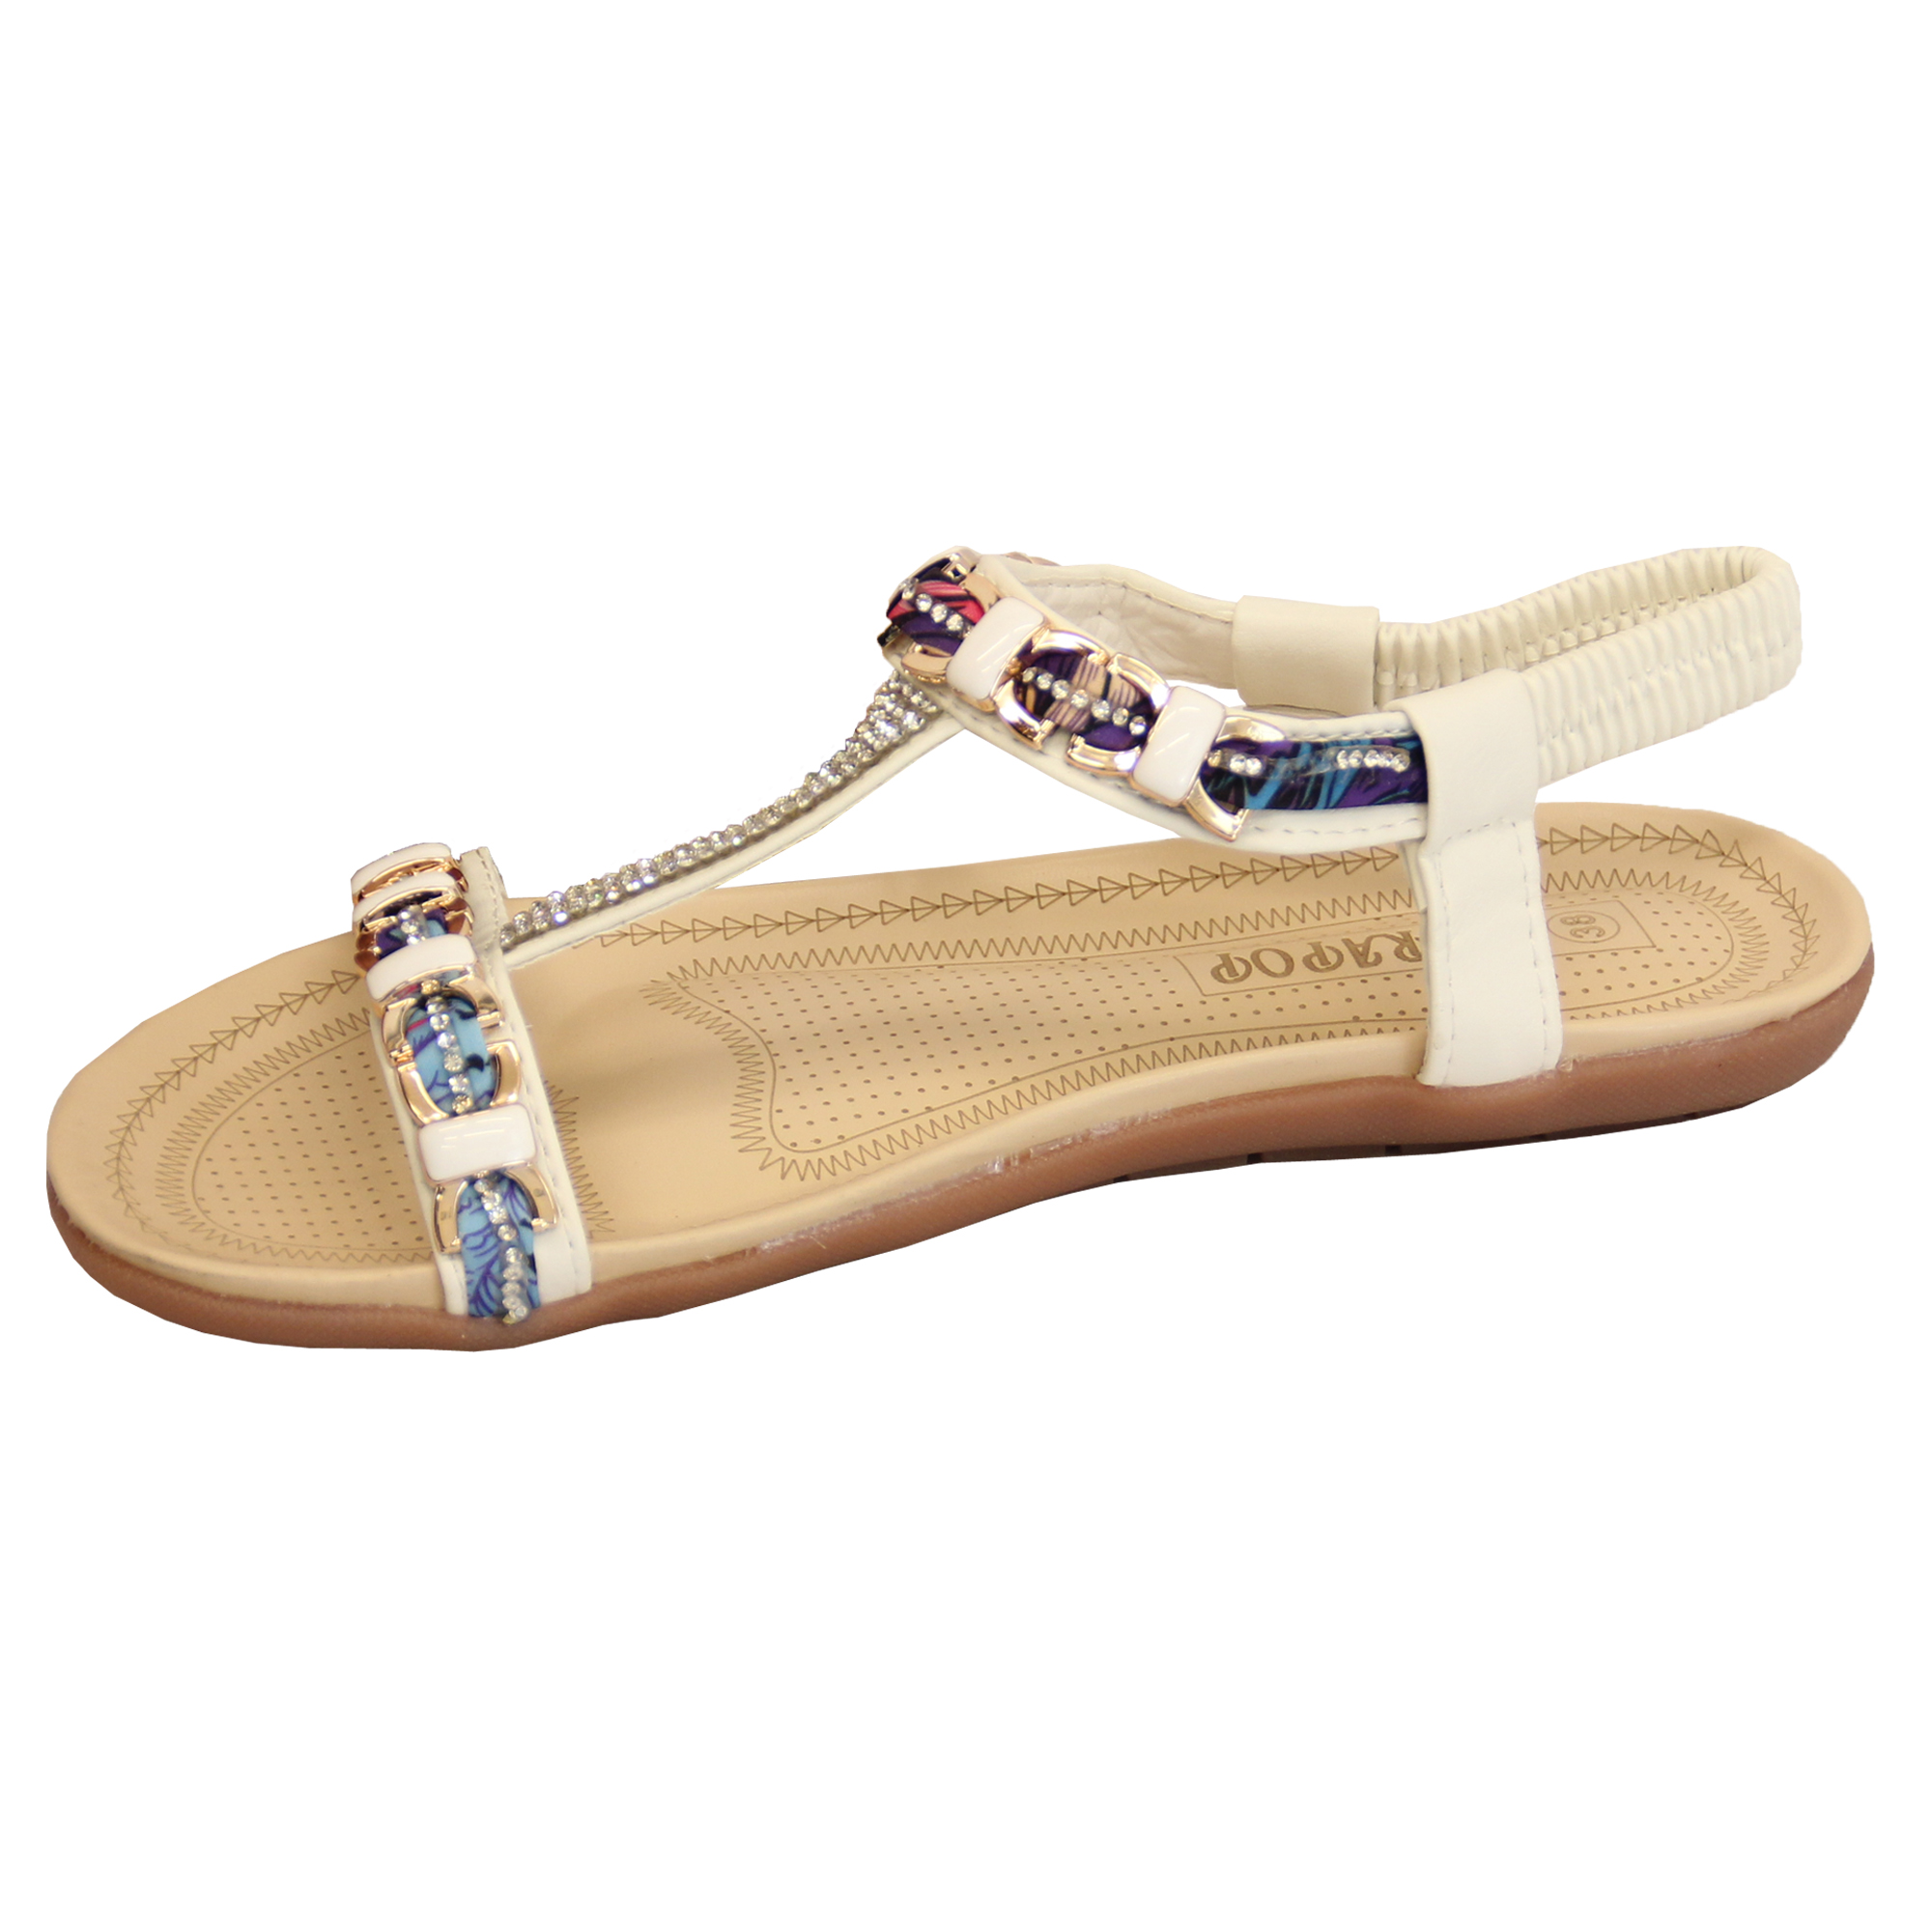 Details about Ladies Diamante Sandals Womens Slip On Flat Open Toe Sling Back Summer Shoes New